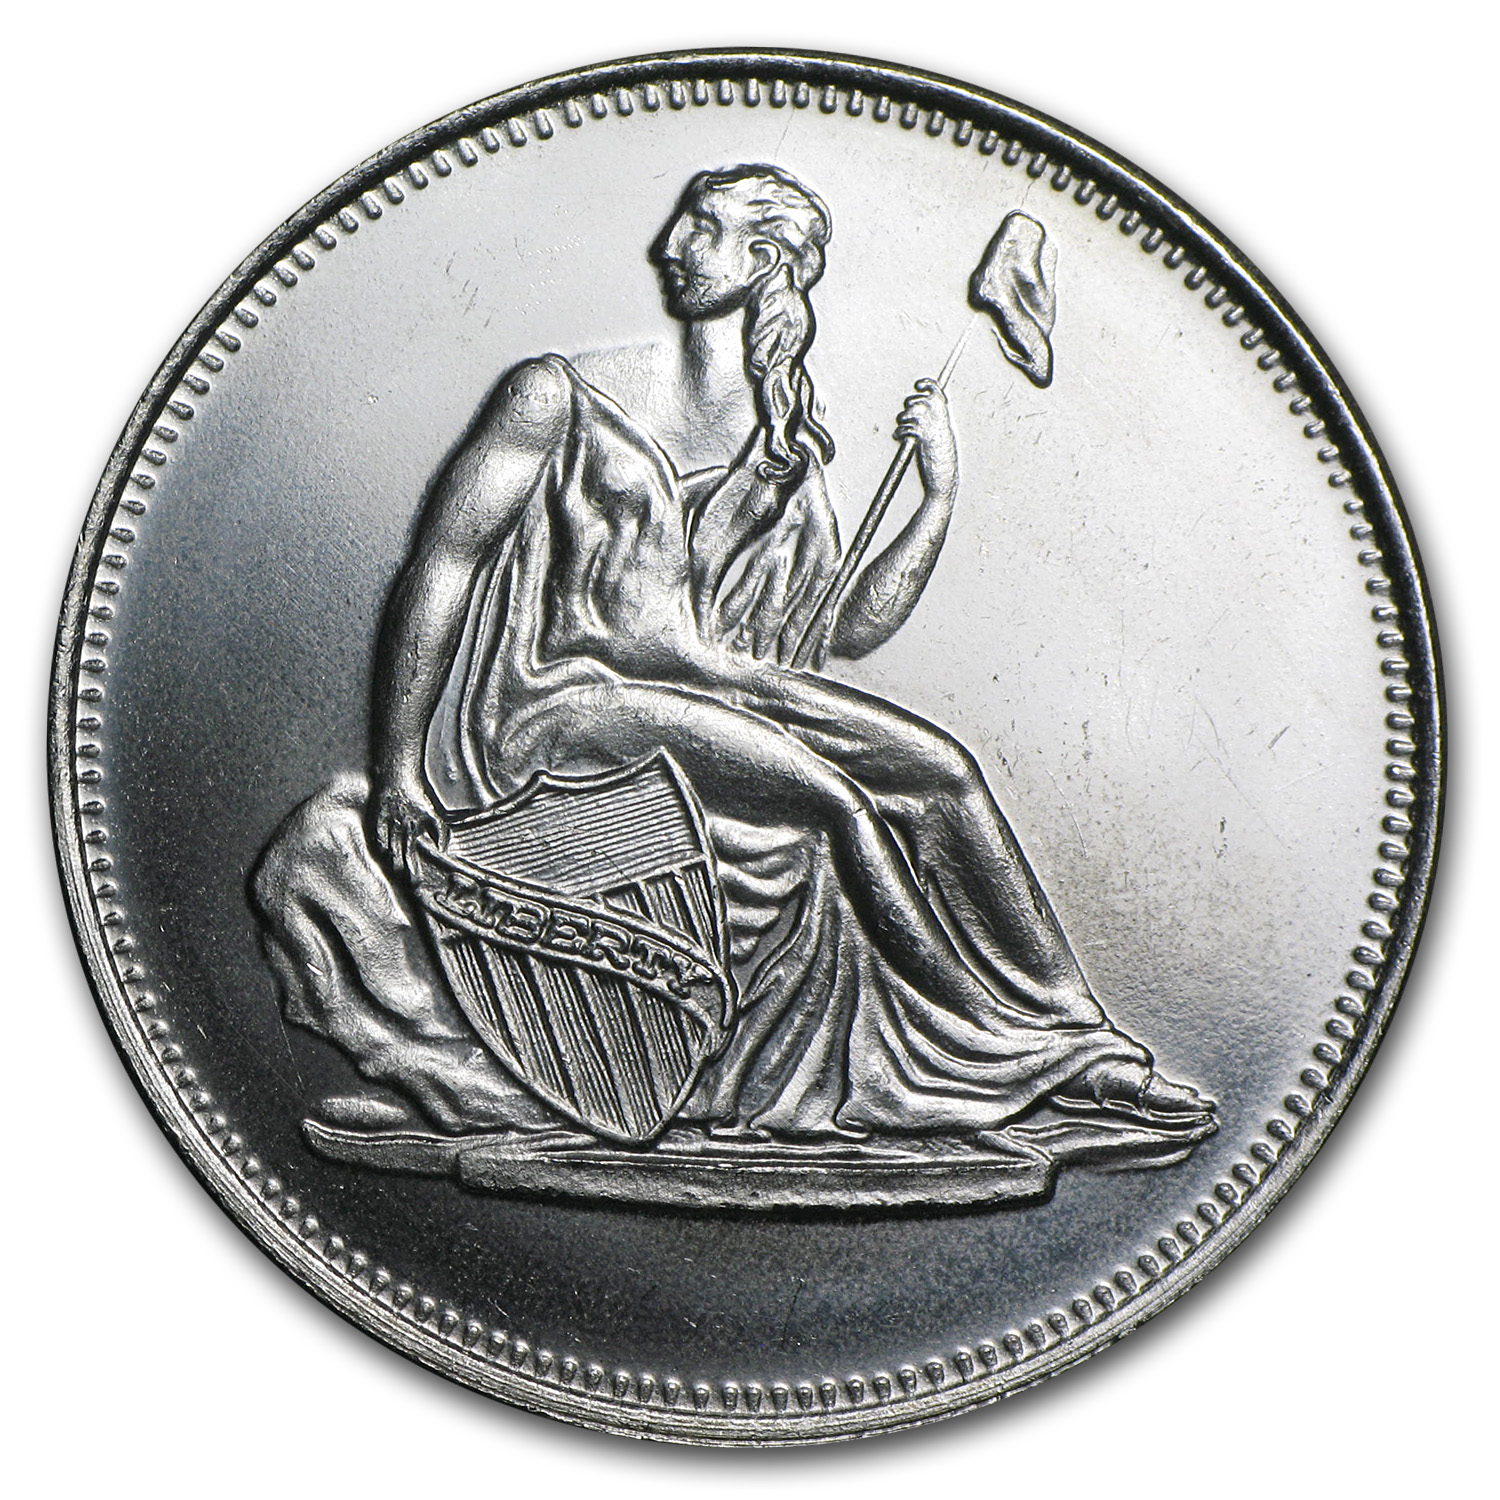 1 oz Silver Round - Seated Liberty Dollar (Replica)